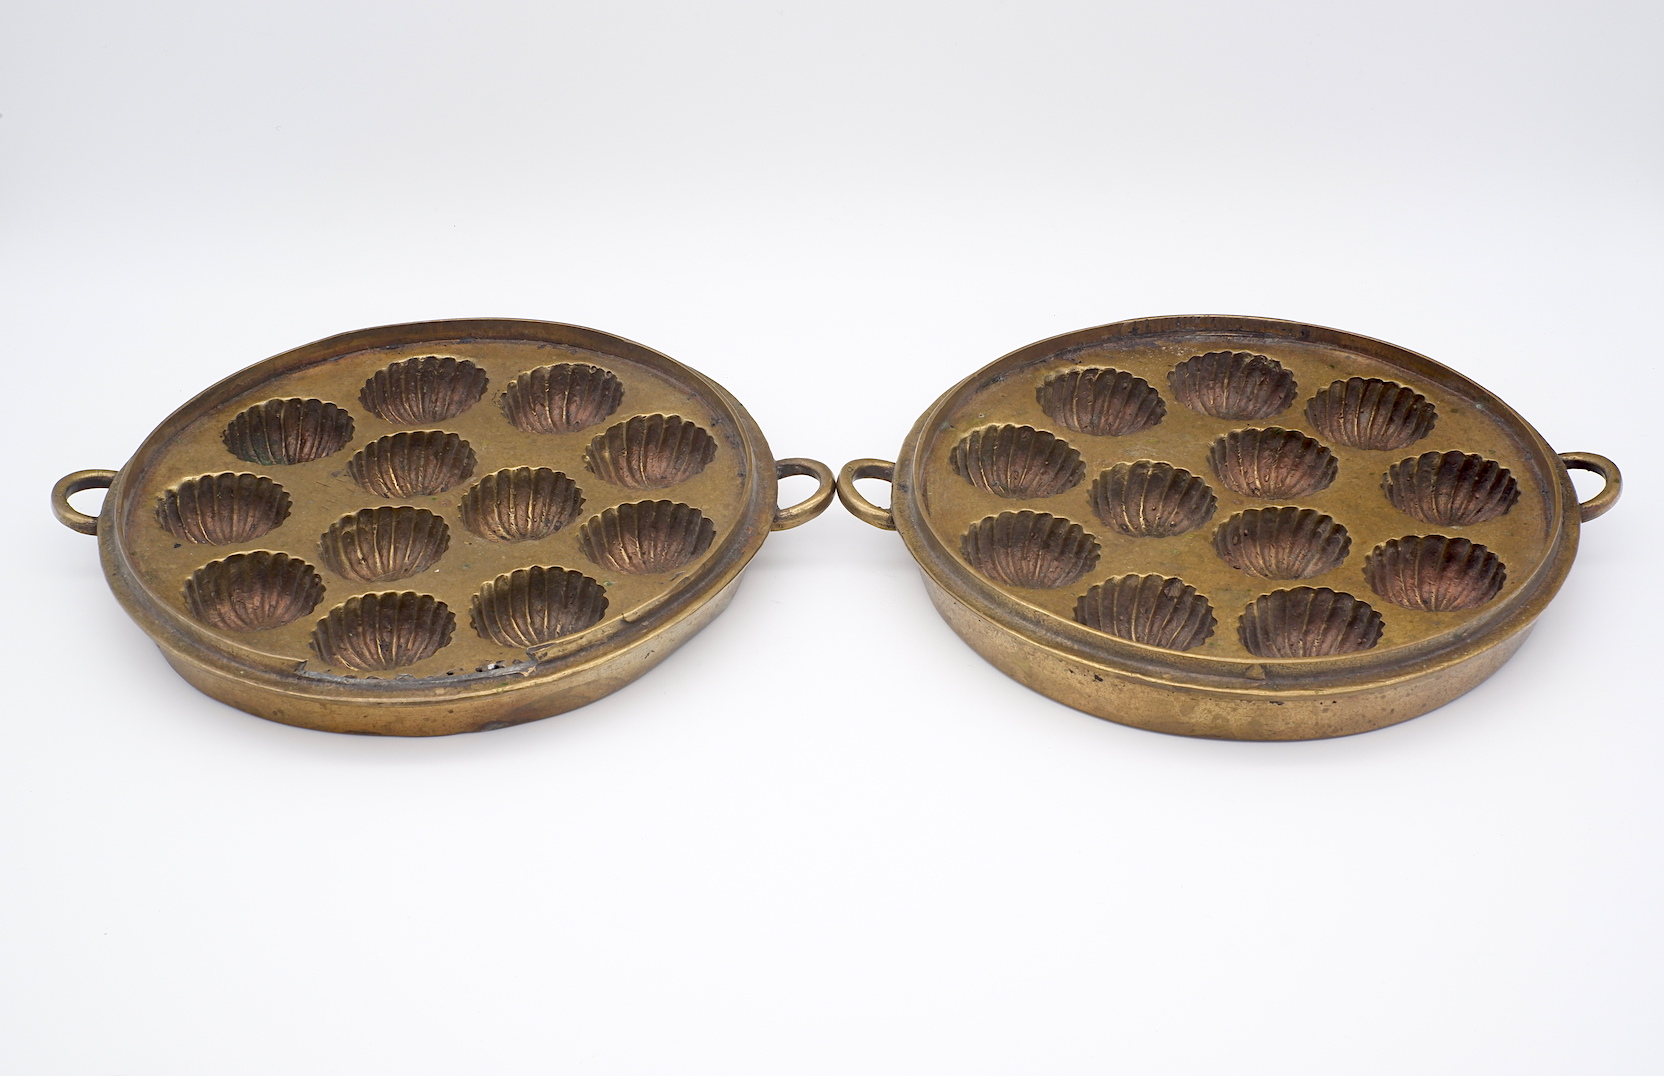 'Antique Bangladeshi Cake Moulds'